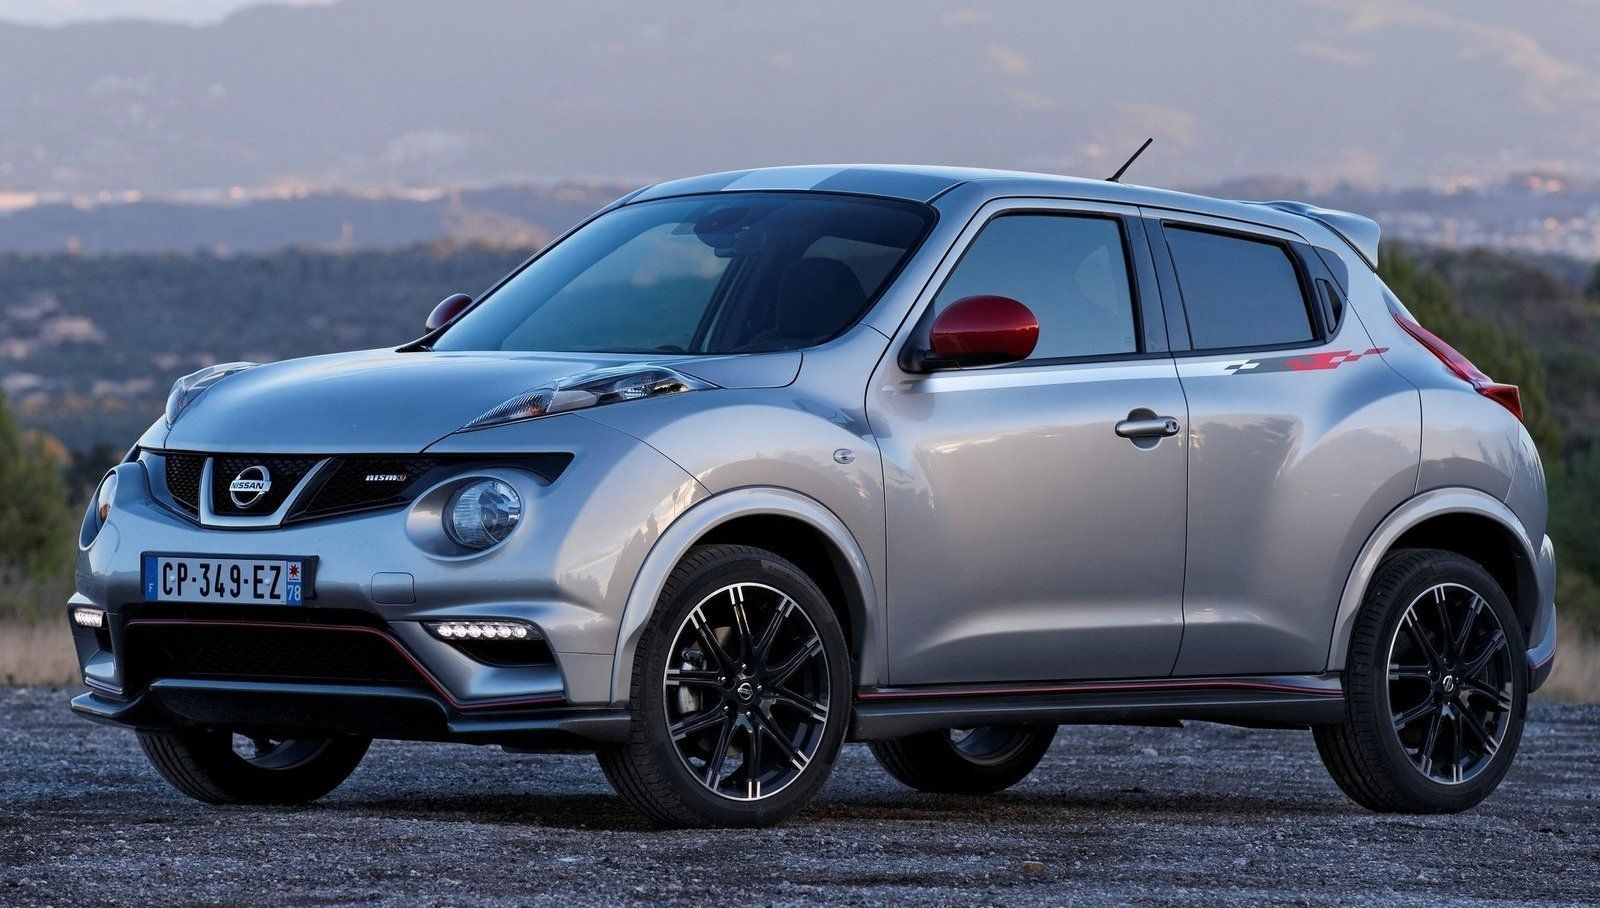 New 2016 Nissan Juke Coupe Concept Preview Nissan Juke Nismo